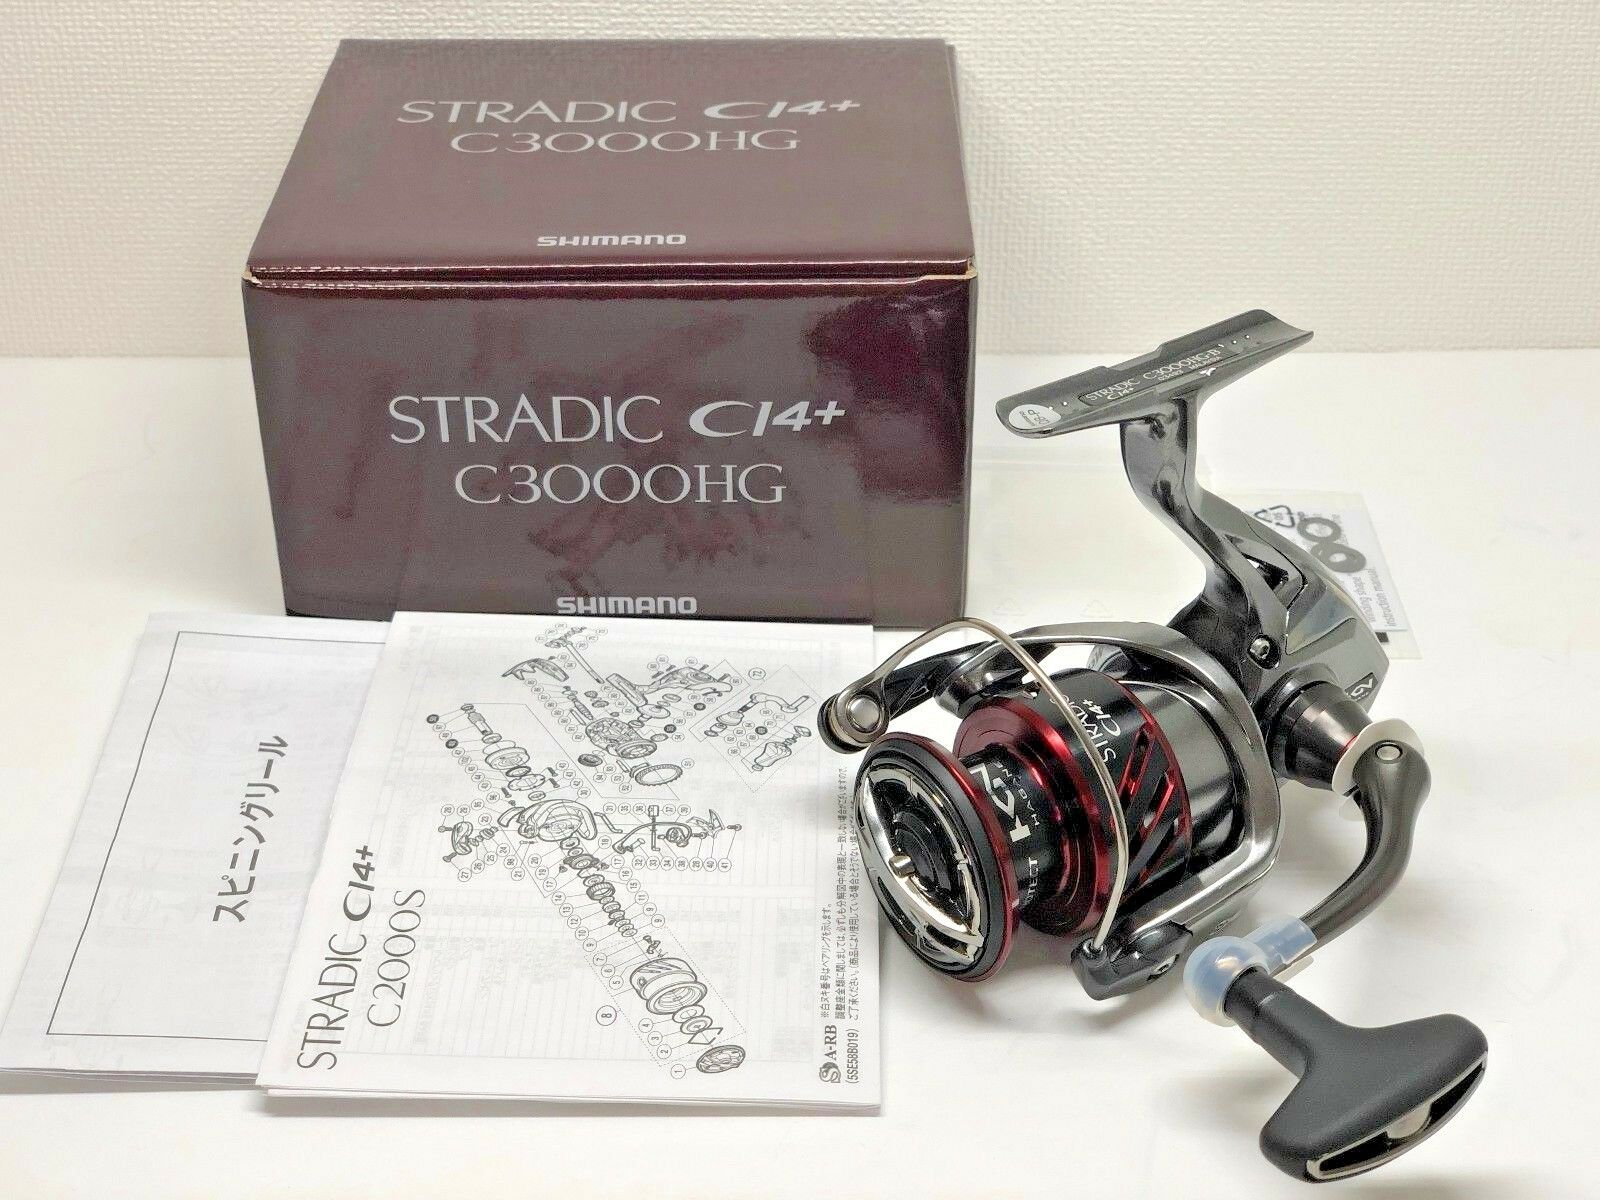 SHIMANO 16 STRADIC CI4+ C3000HG   - Free Shipping from Japan